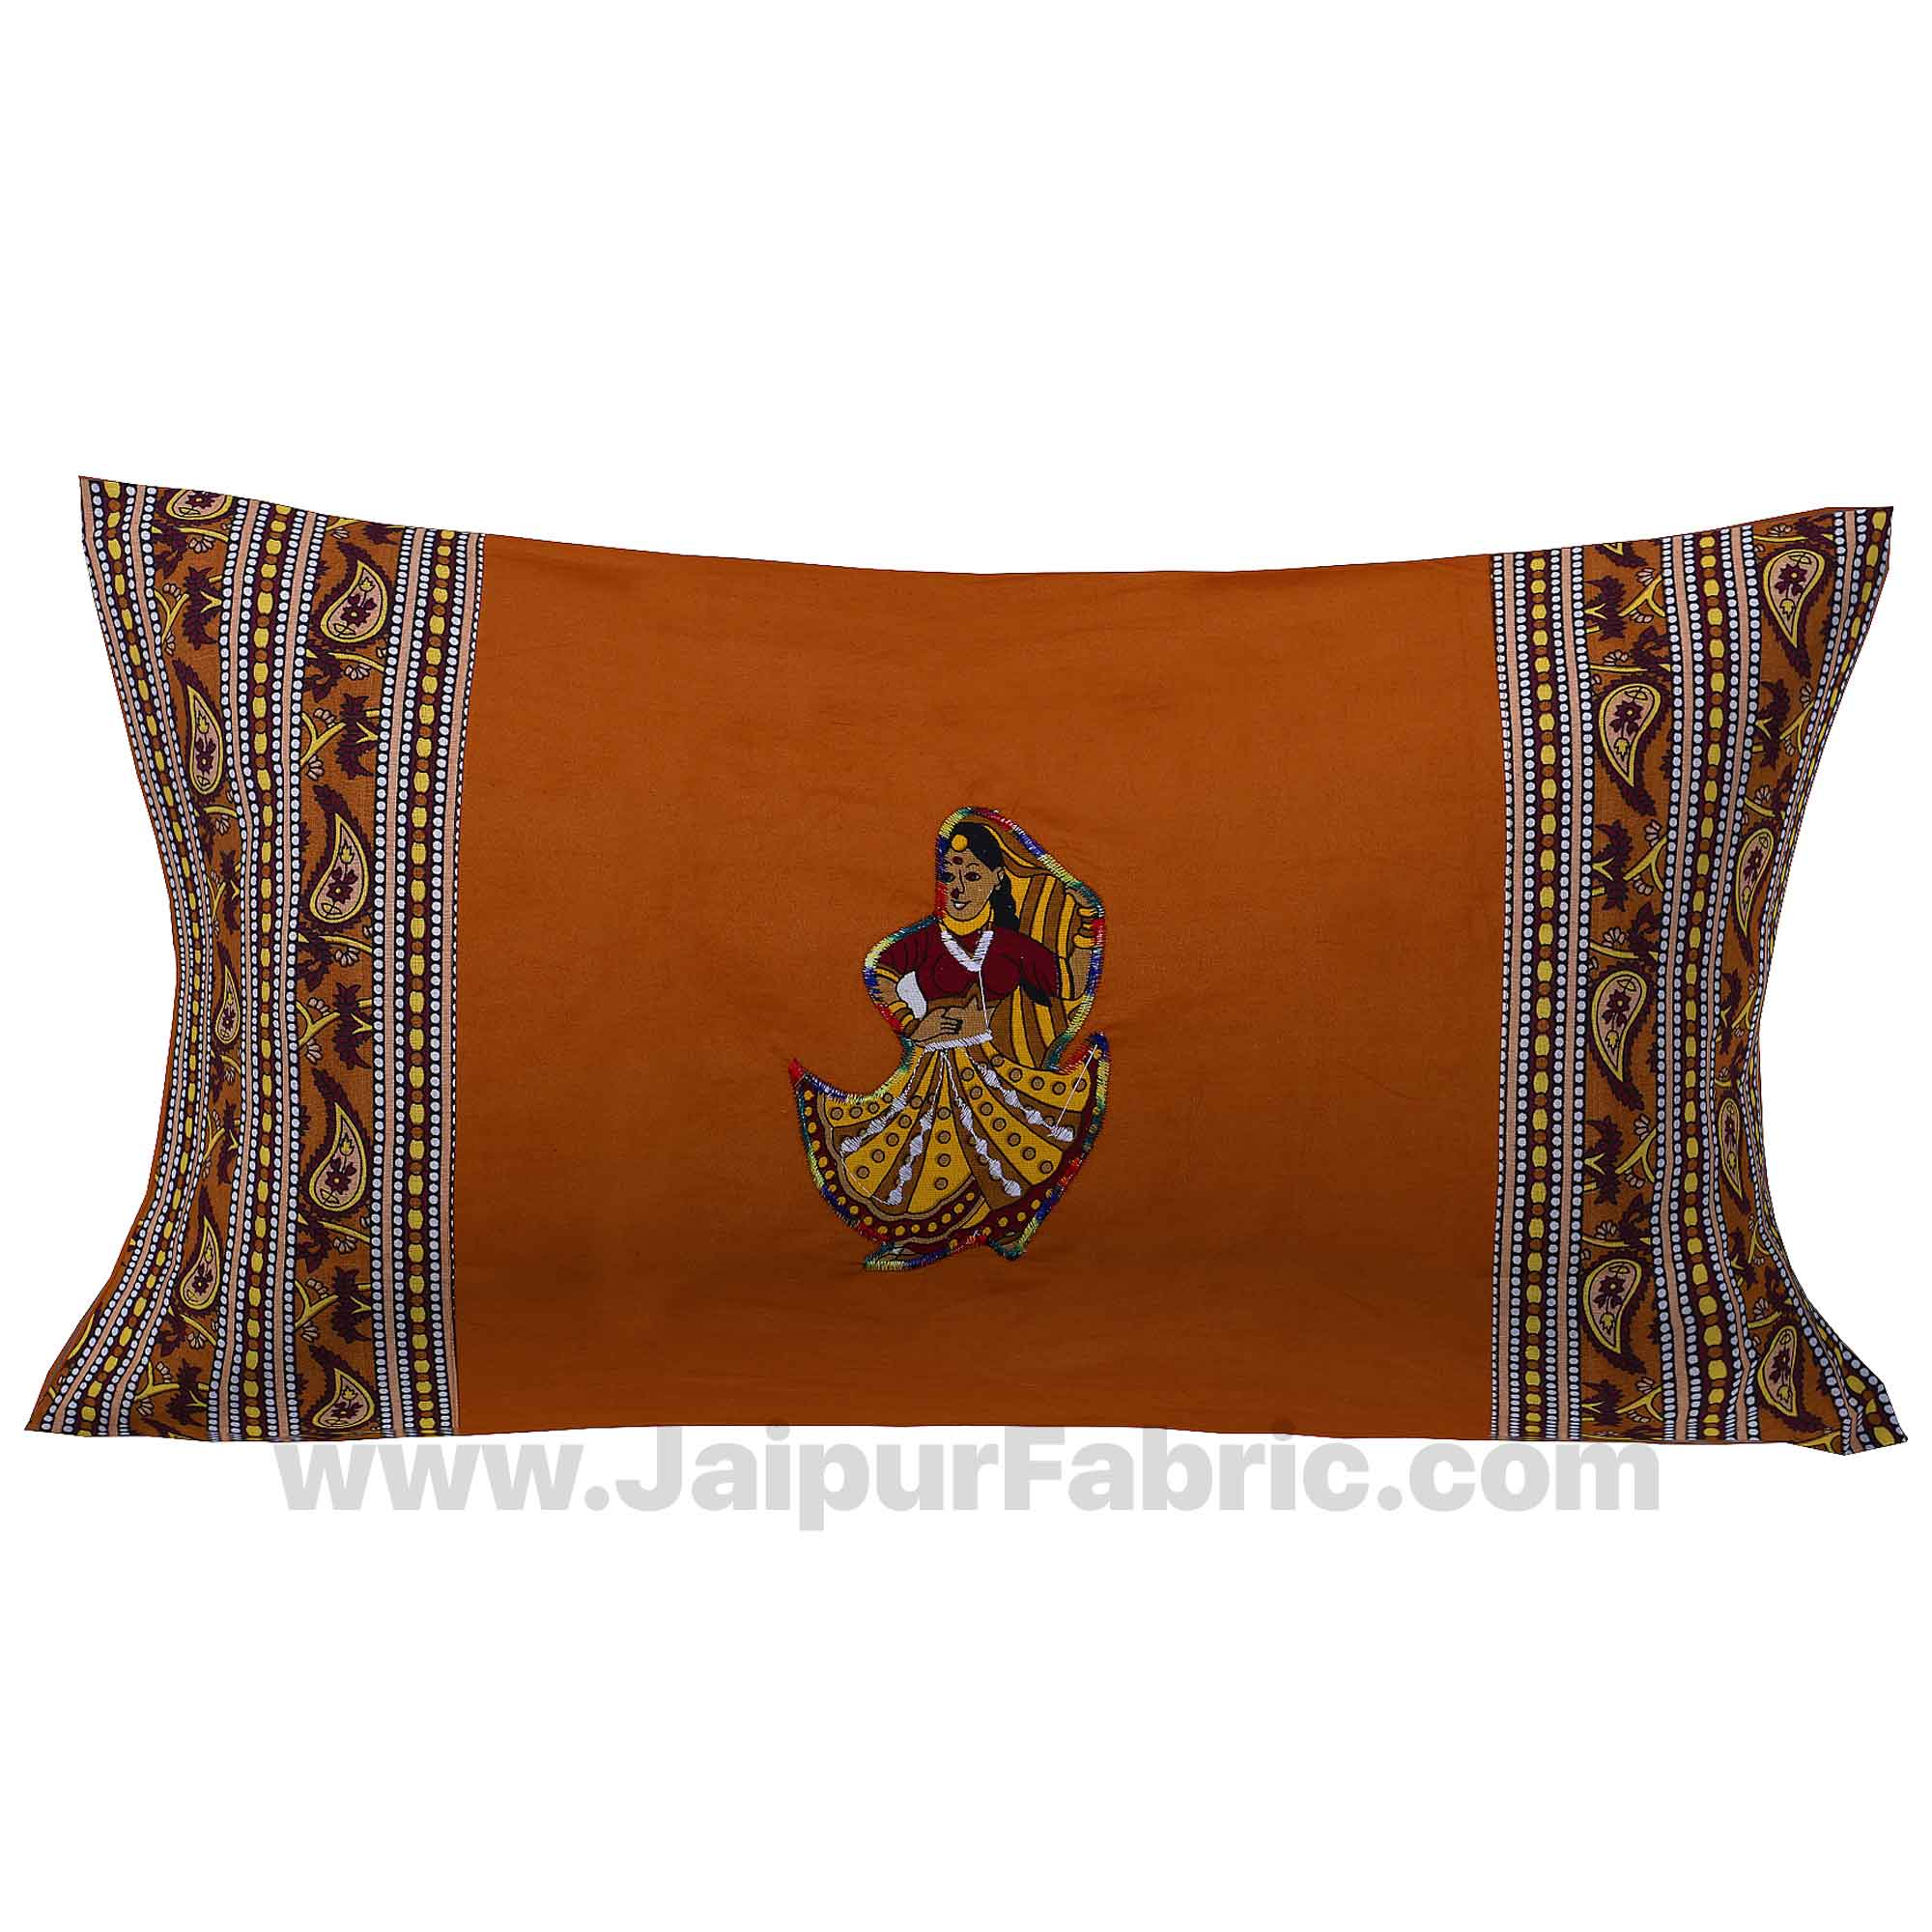 Applique Mustard Rajasthani Dance Jaipuri  Hand Made Embroidery Patch Work Single Bedsheet